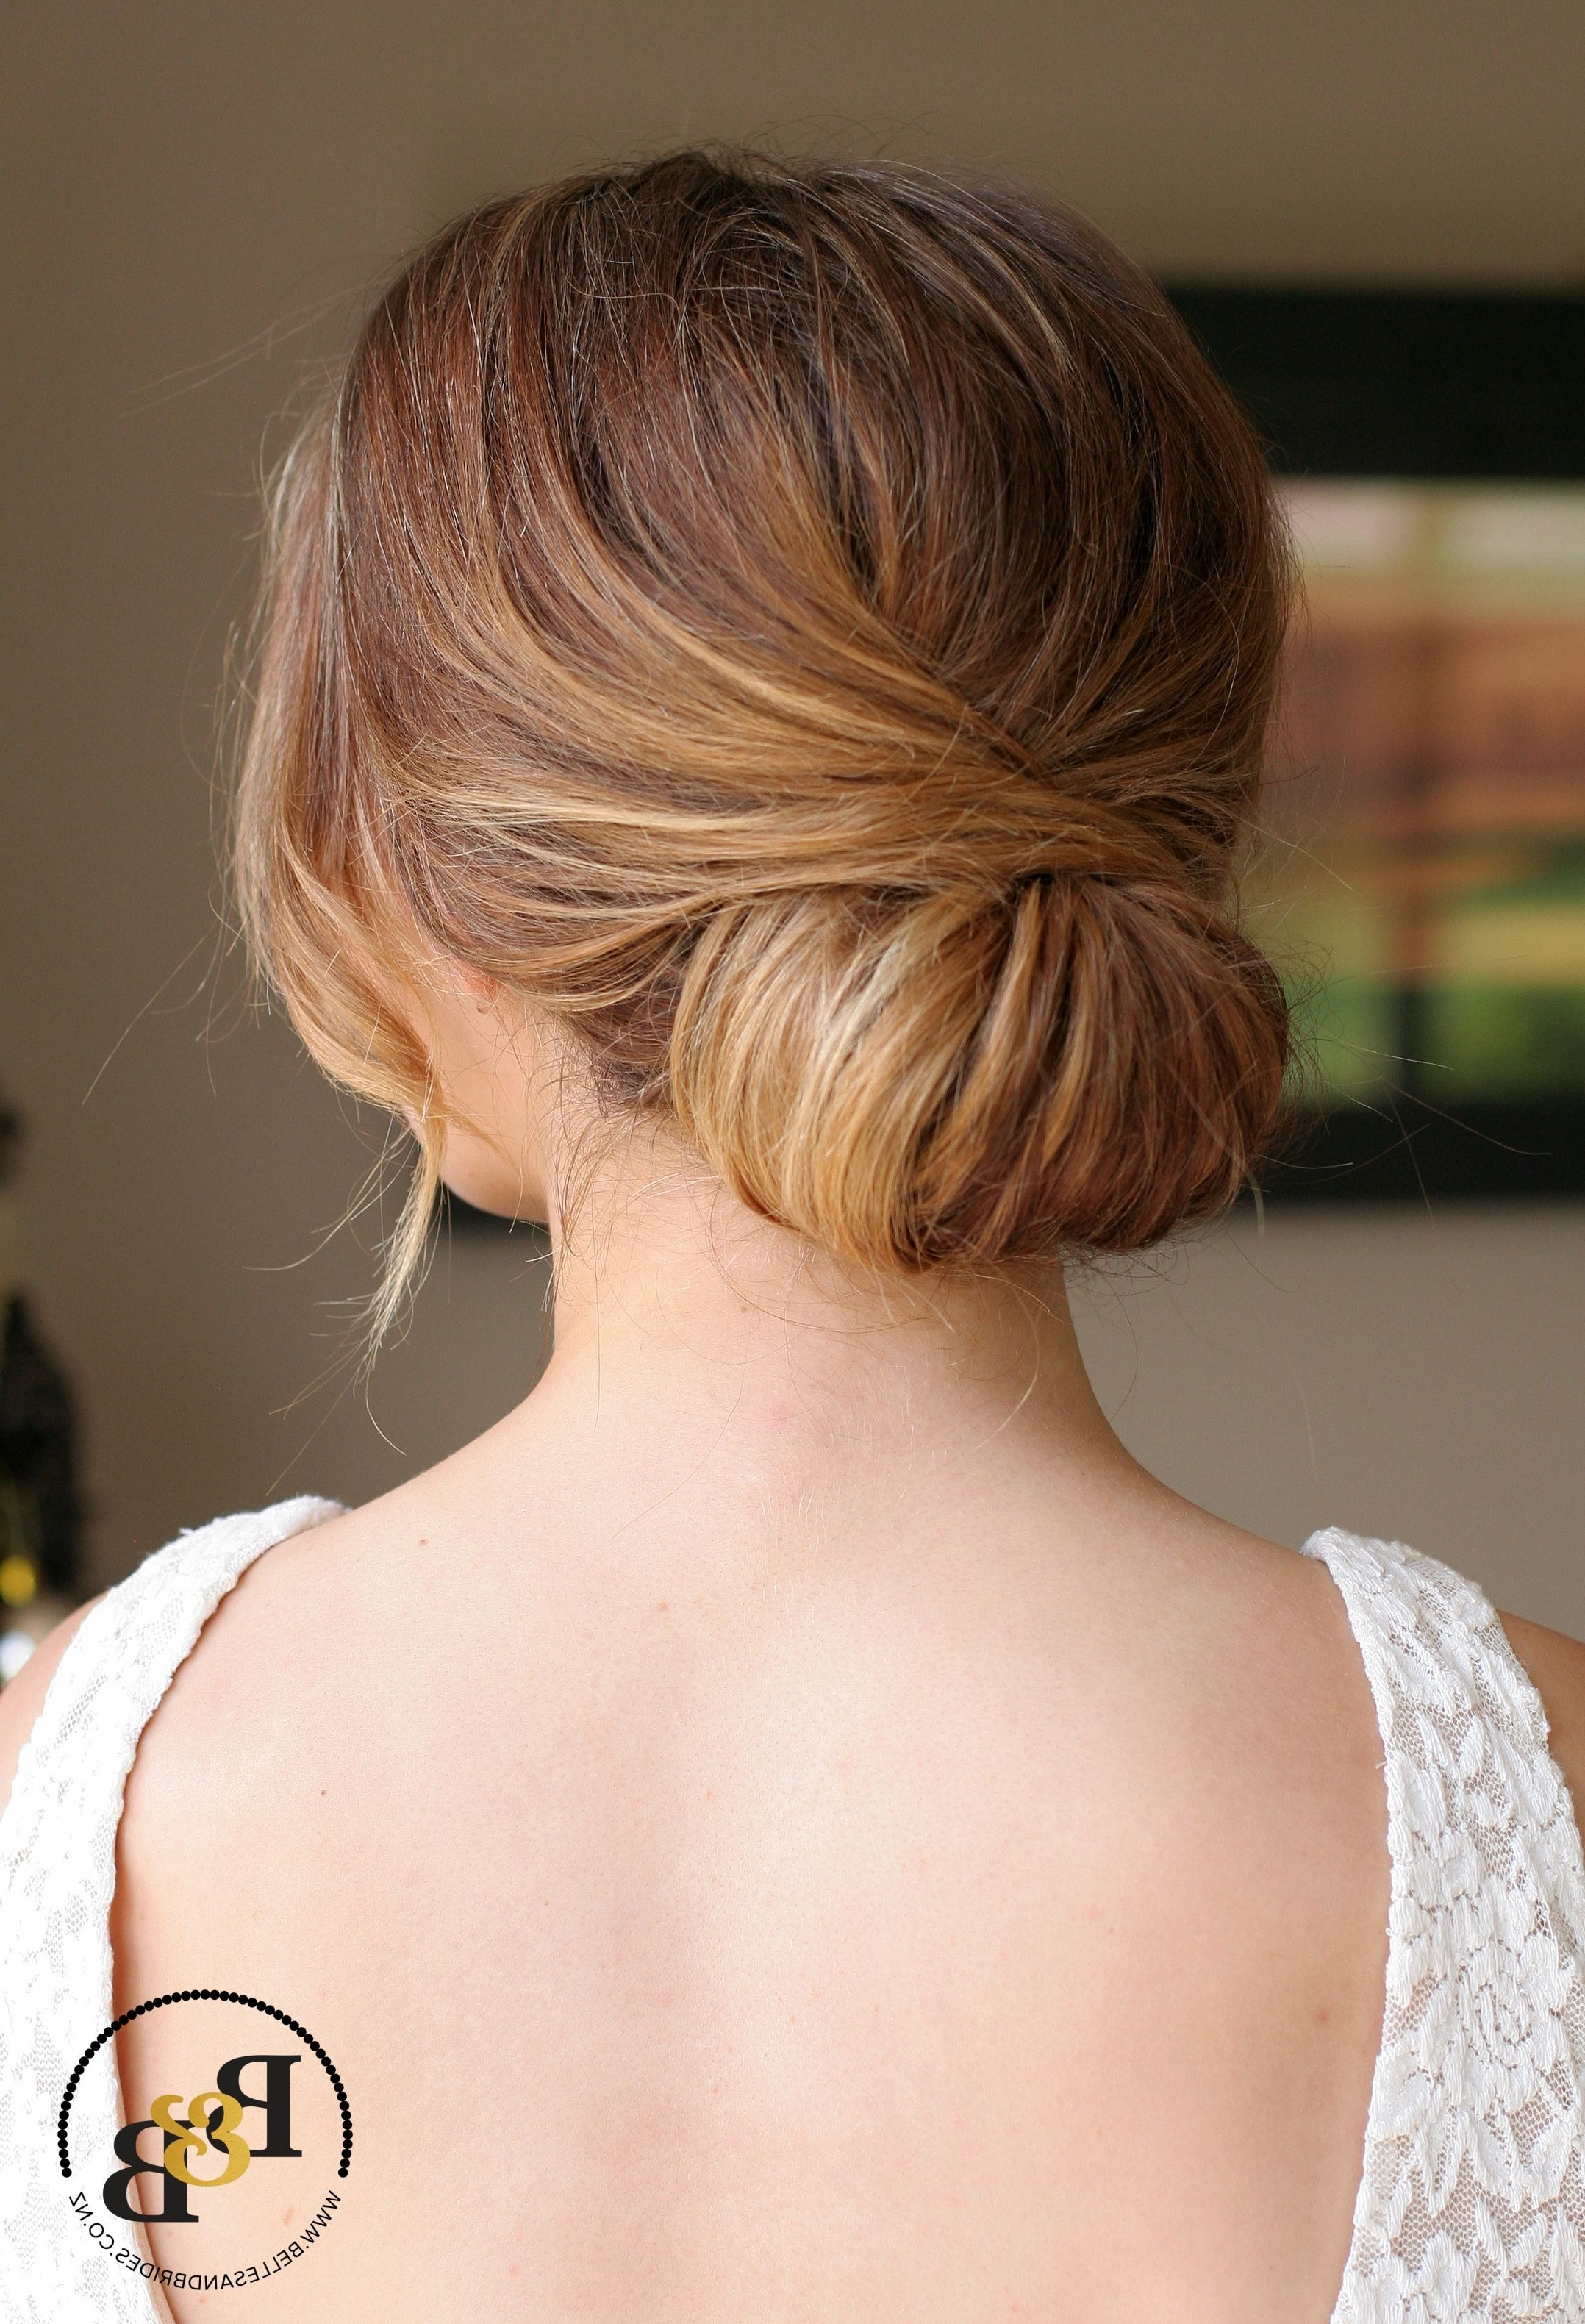 Wedding Hair Low Chignon / Casual Bridal Chignon / Soft Romantic Intended For Chignon Updo Hairstyles (View 15 of 15)